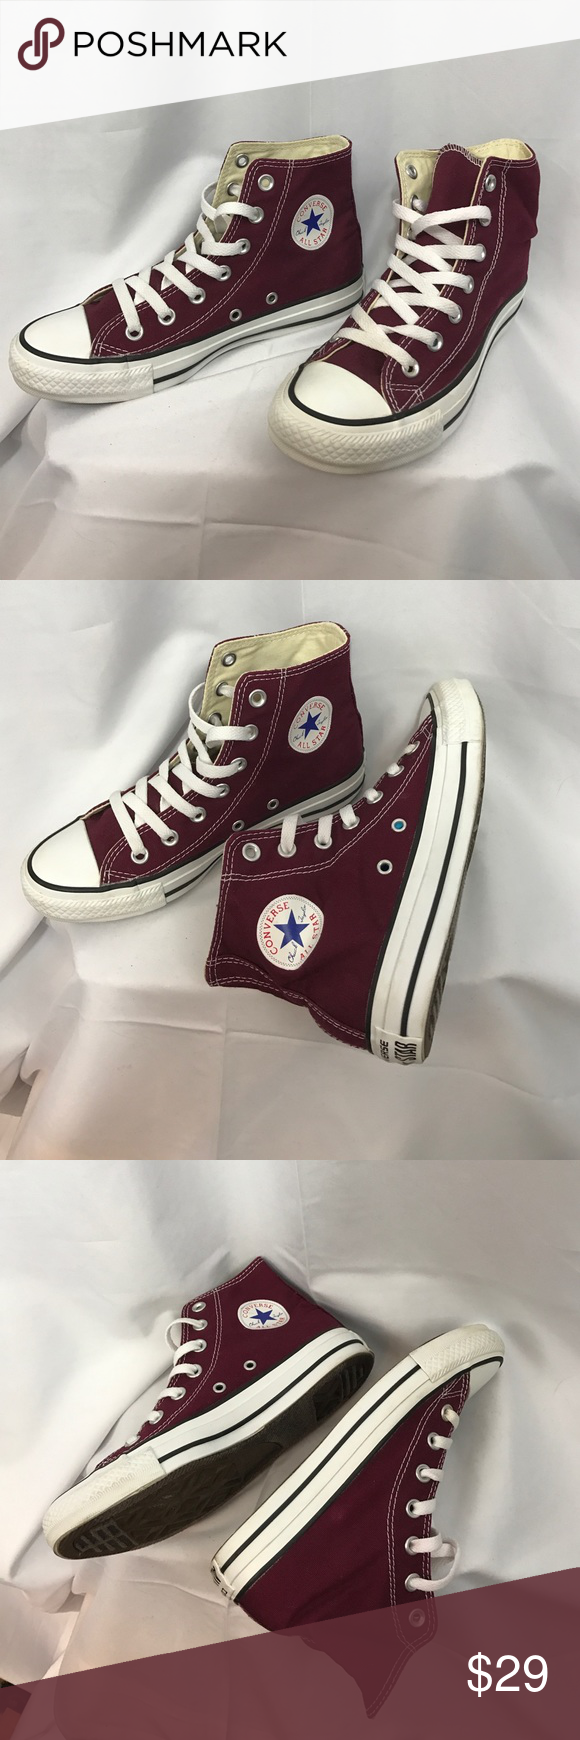 67cfeef61d7 Converse All Star sz6 burgundy high top sneakers Excellent used condition Converse  All Star sz6 burgundy high top sneakers...very little wear...like new.